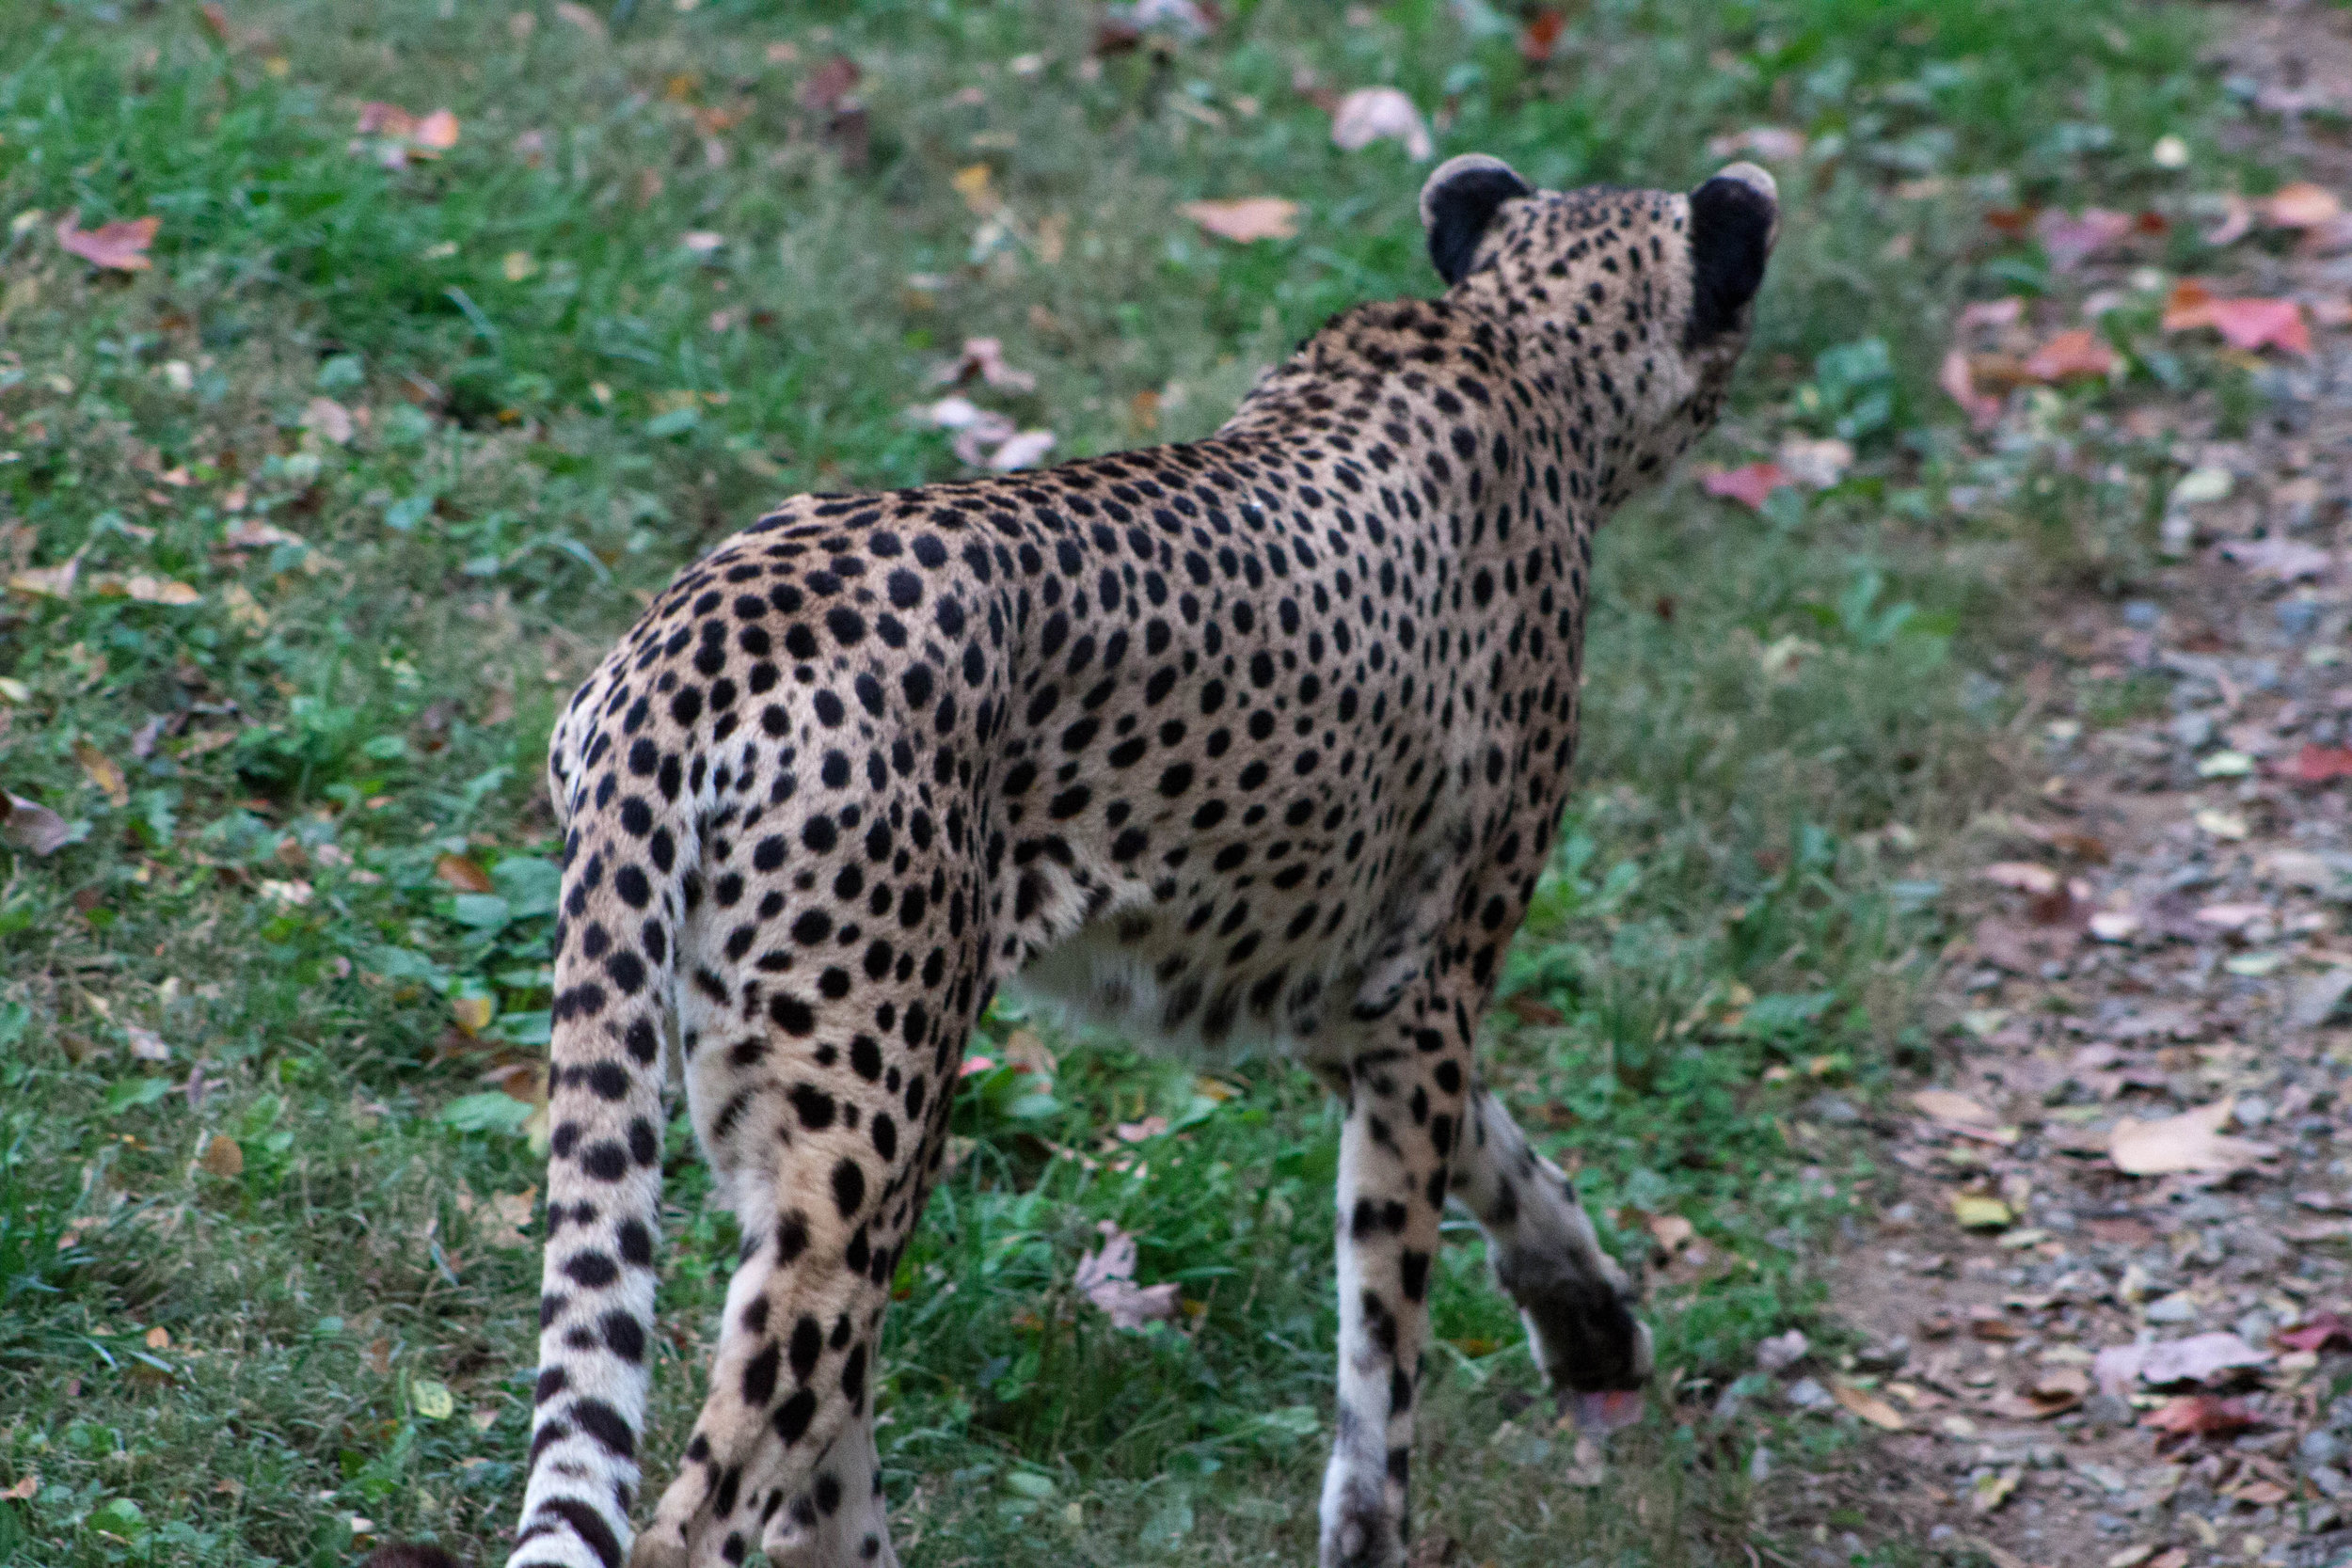 A cheetah stalks through its enclosure at  the Smithsonian's National Zoo  in Washington, D.C., October 2012.